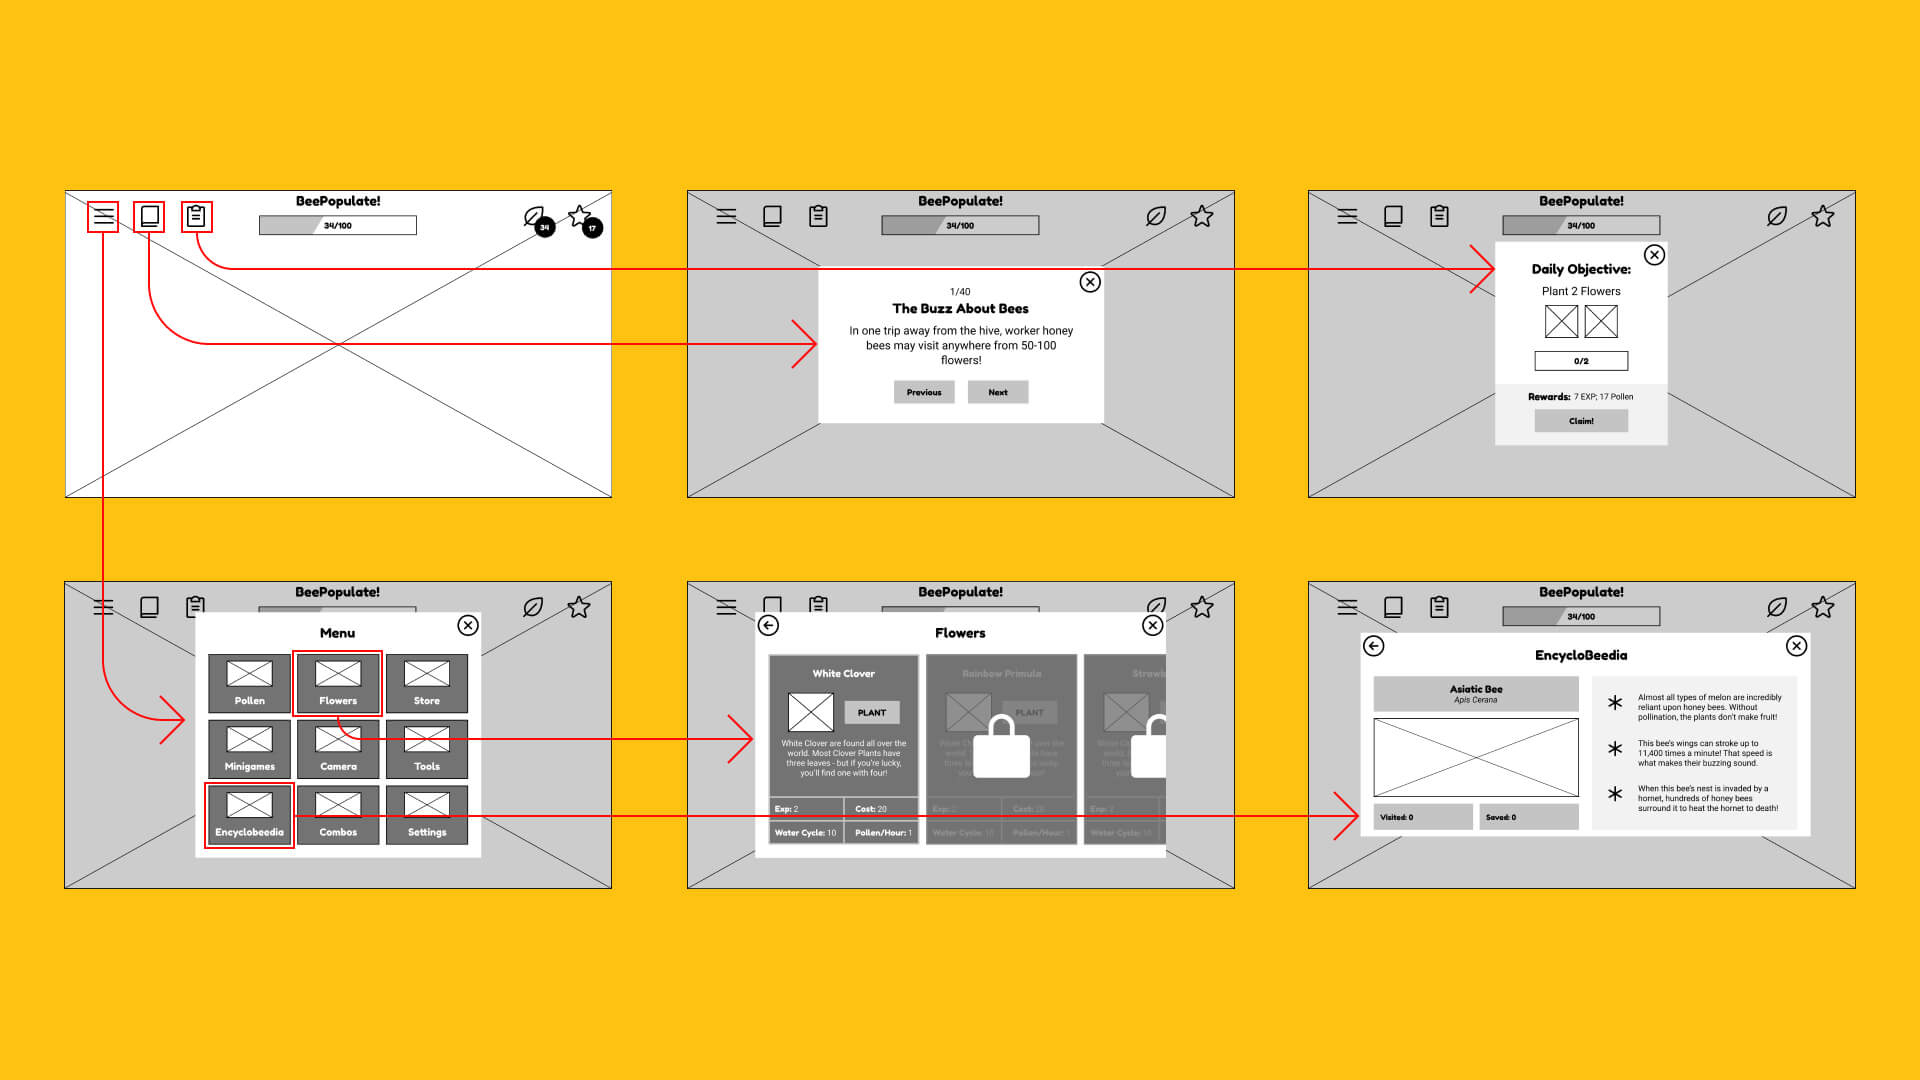 Wireframes showing some of the FTUE flow